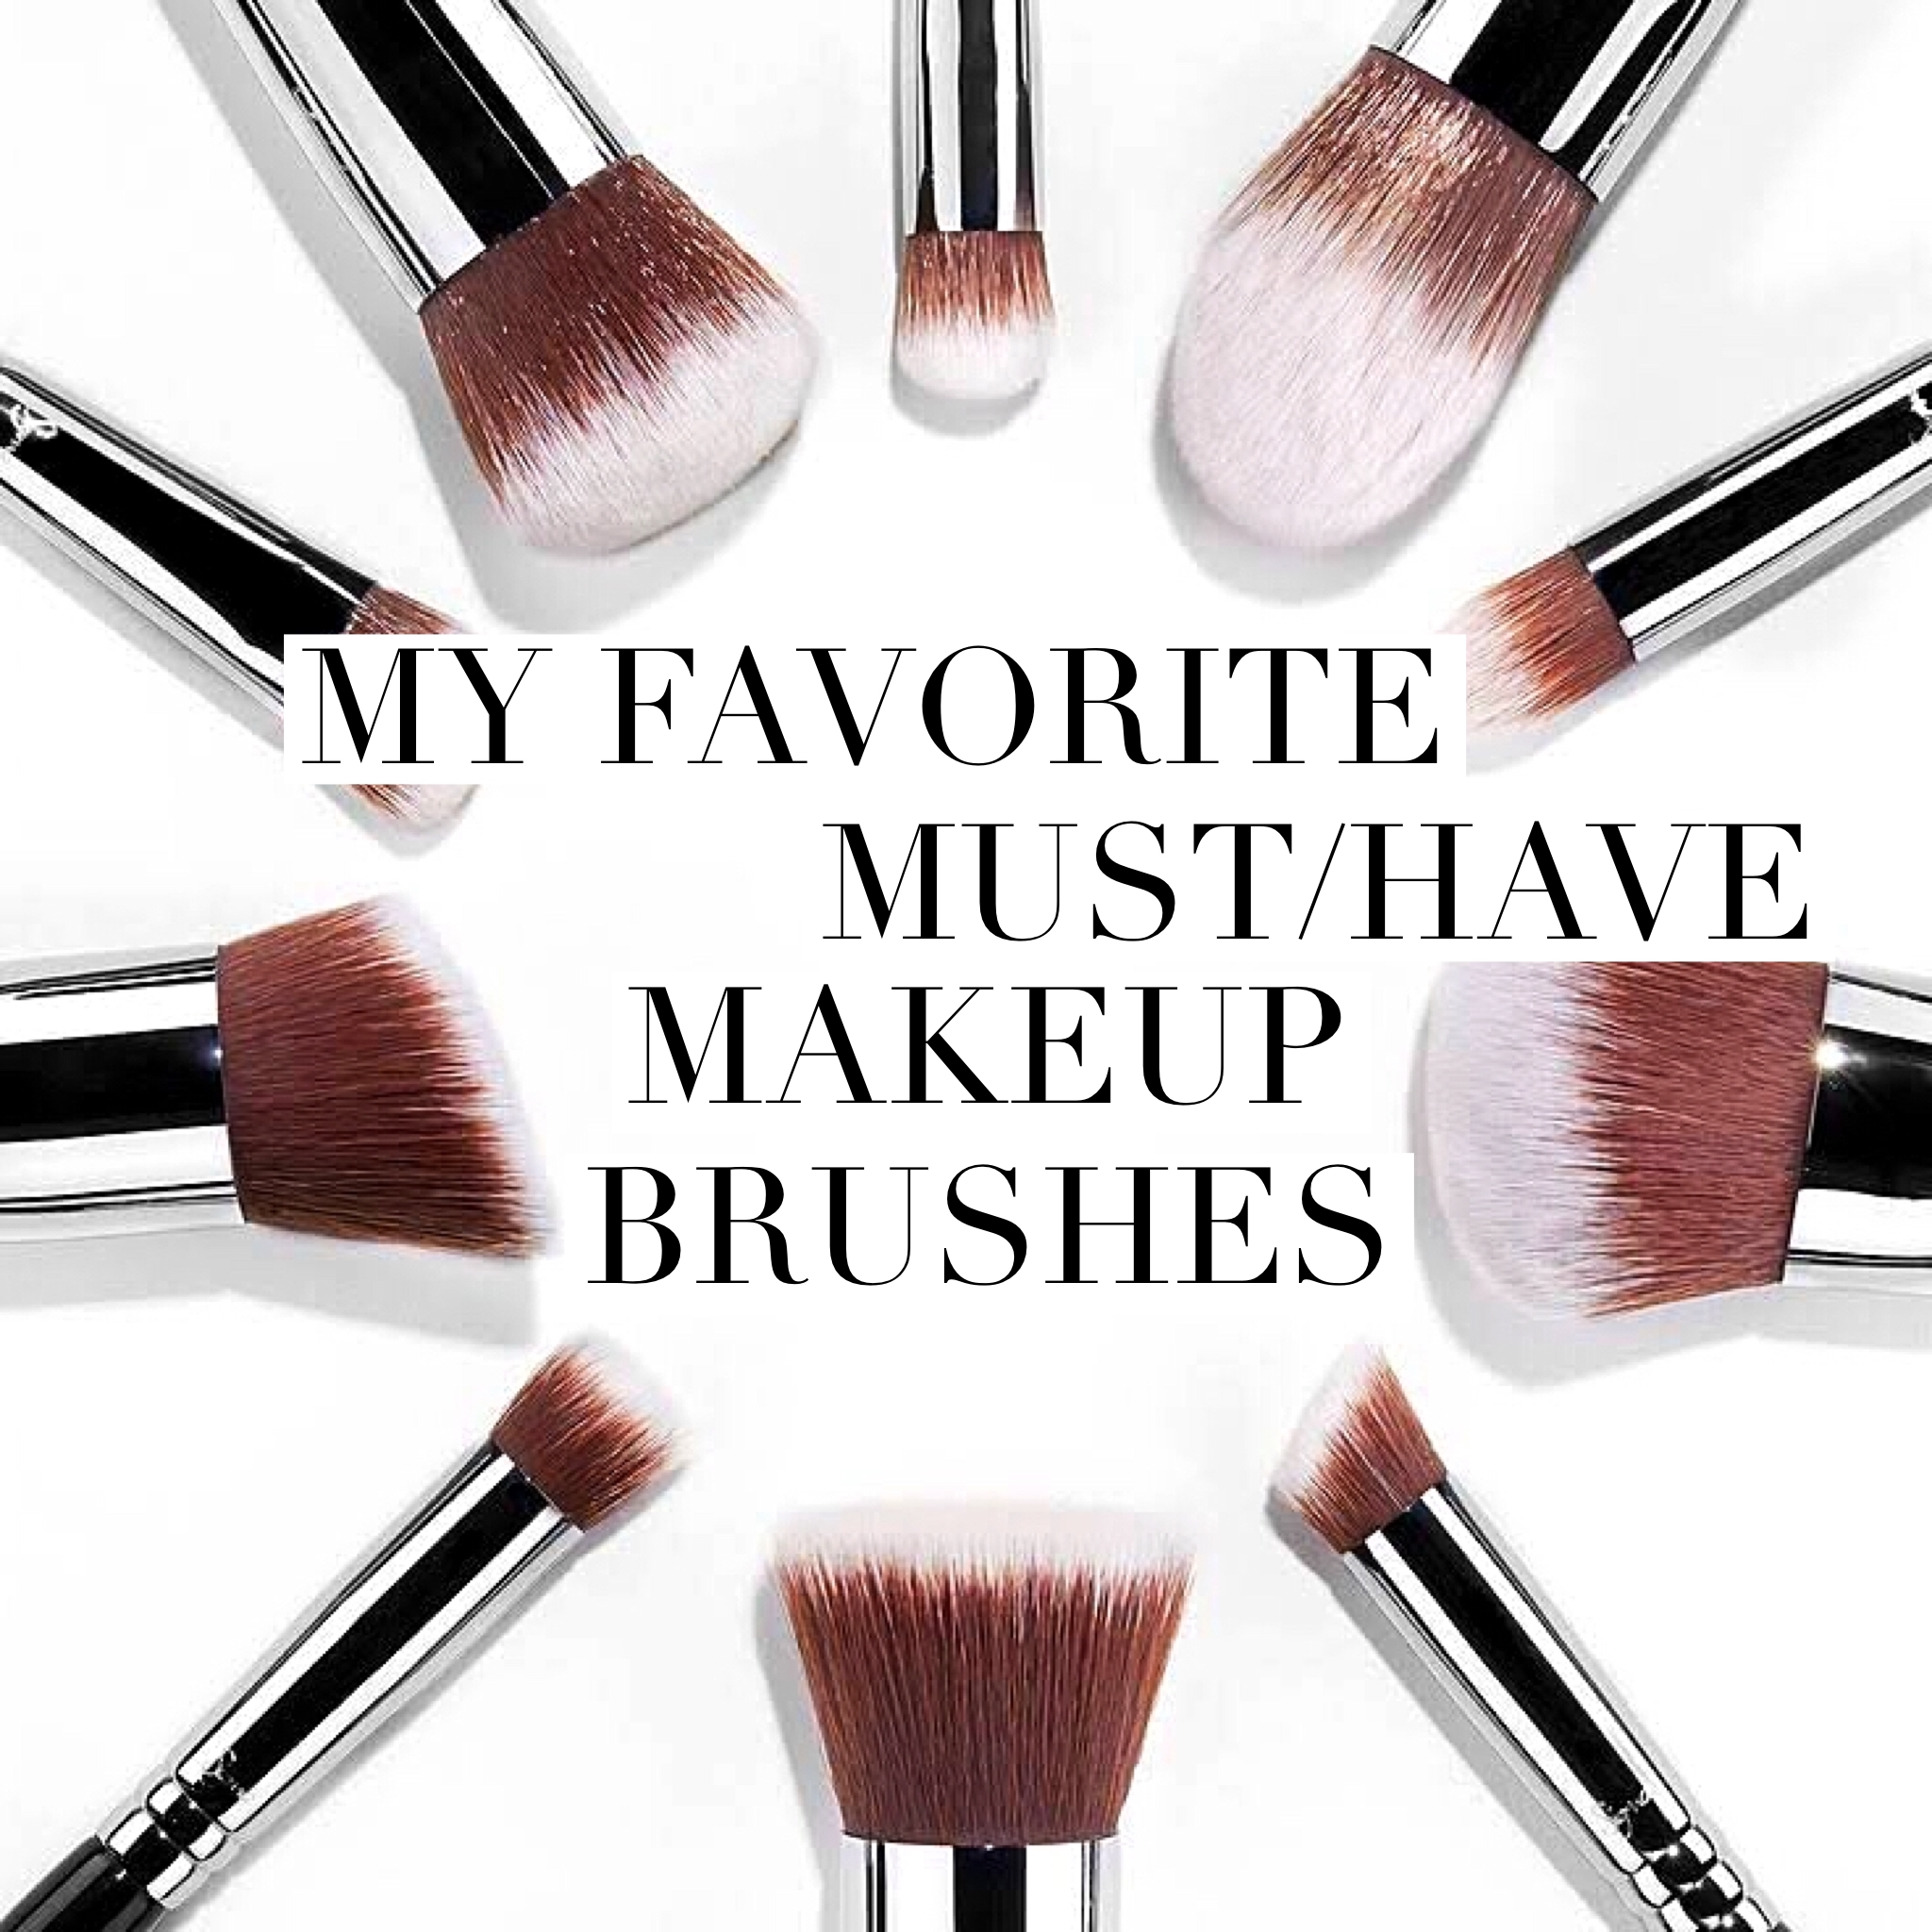 MY MUST HAVE AFFORDABLE MAKEUP BRUSHES Makeup brush kit